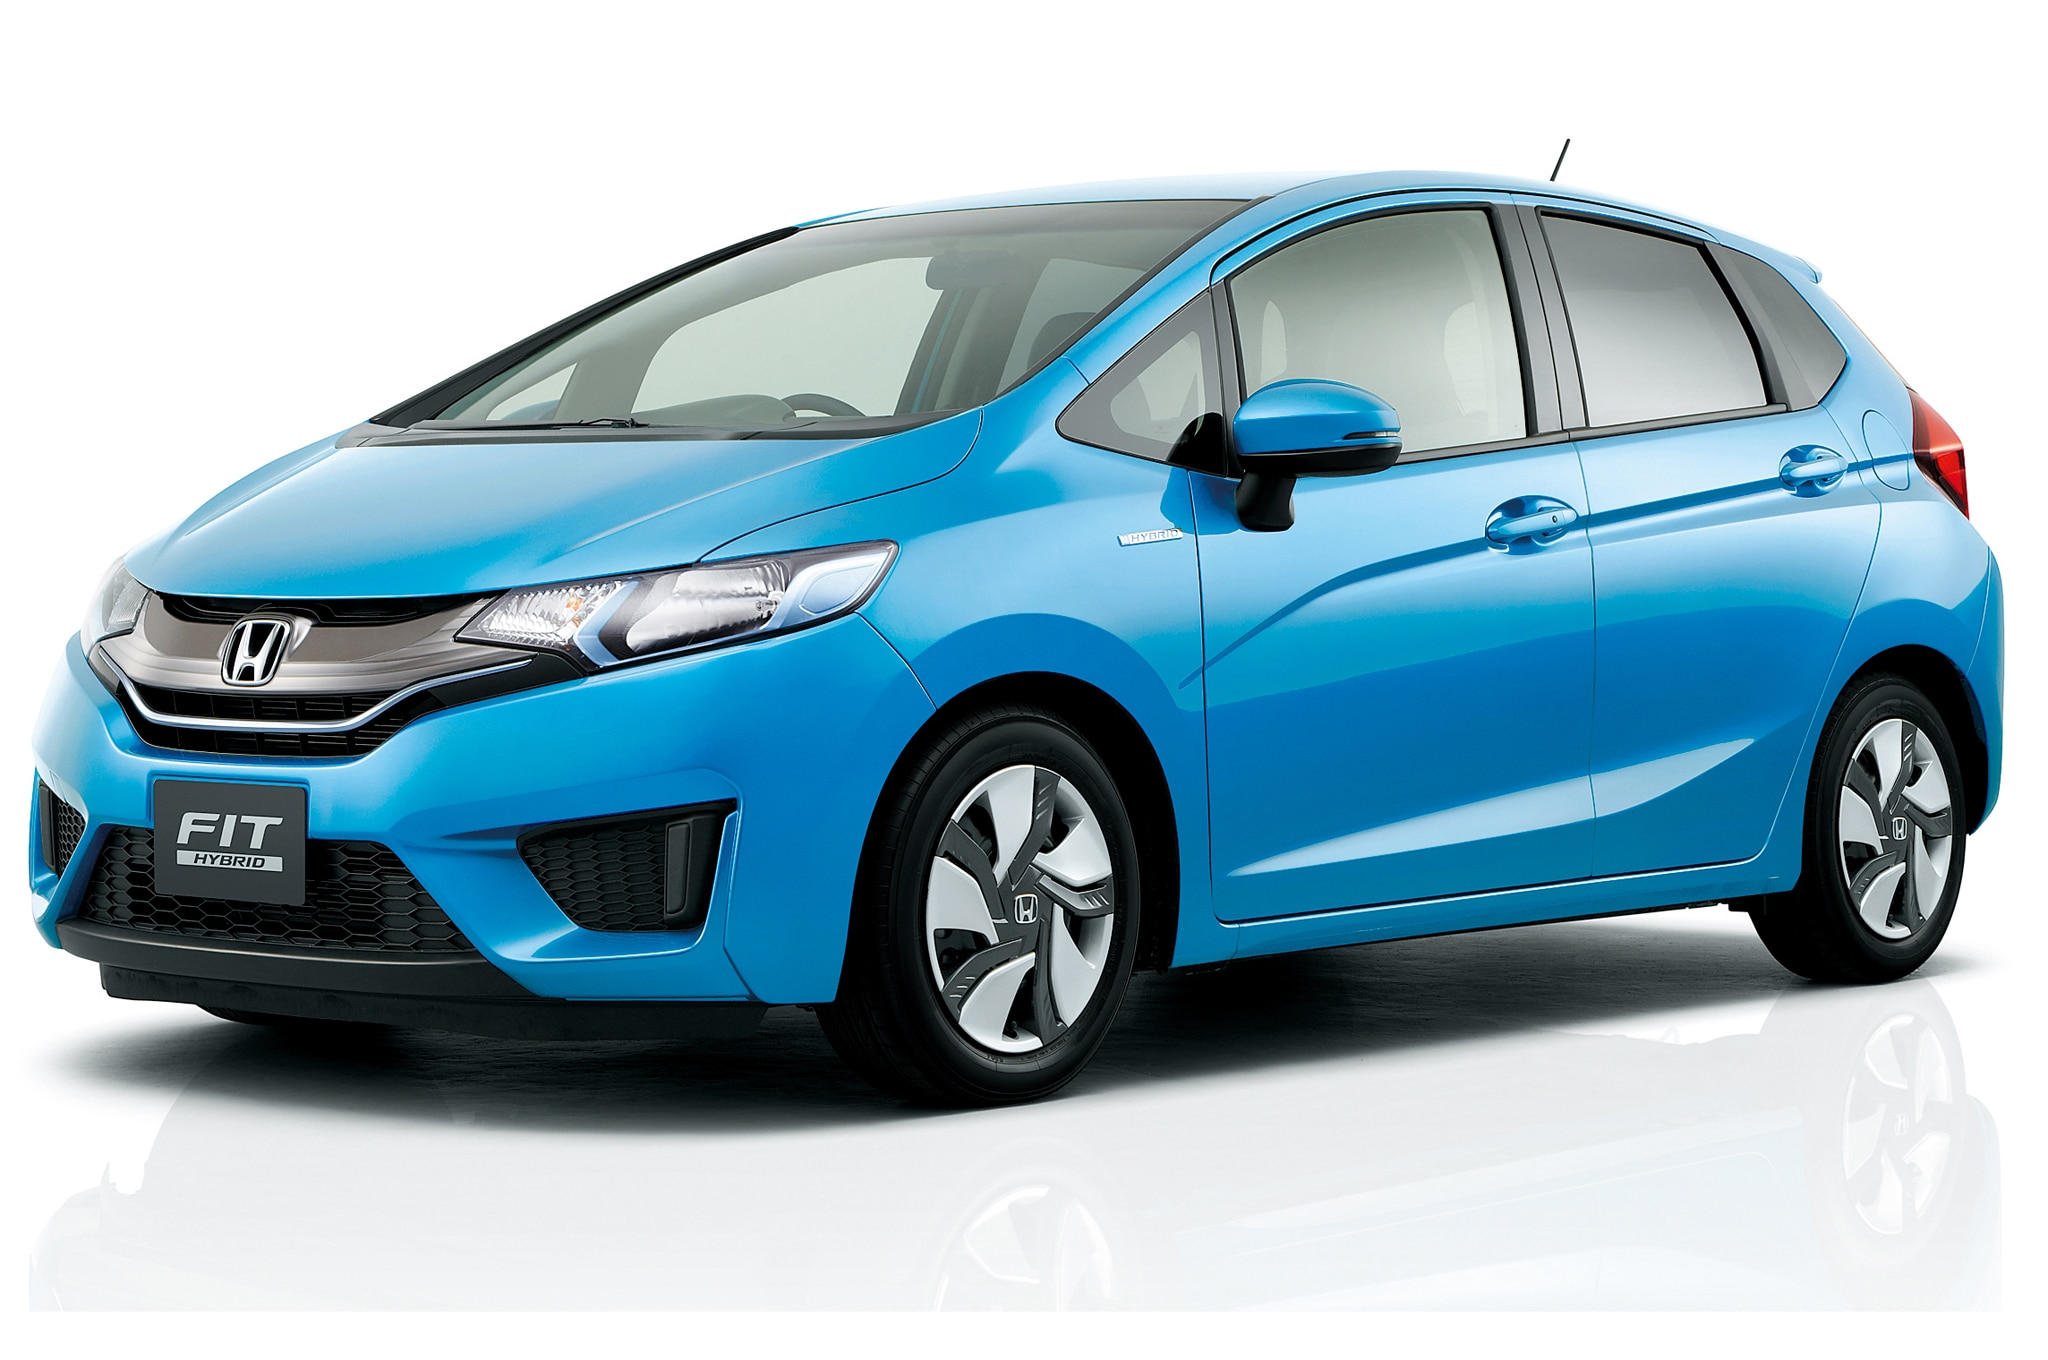 2015 Honda Fit Transmissions to Be Built In Mexico